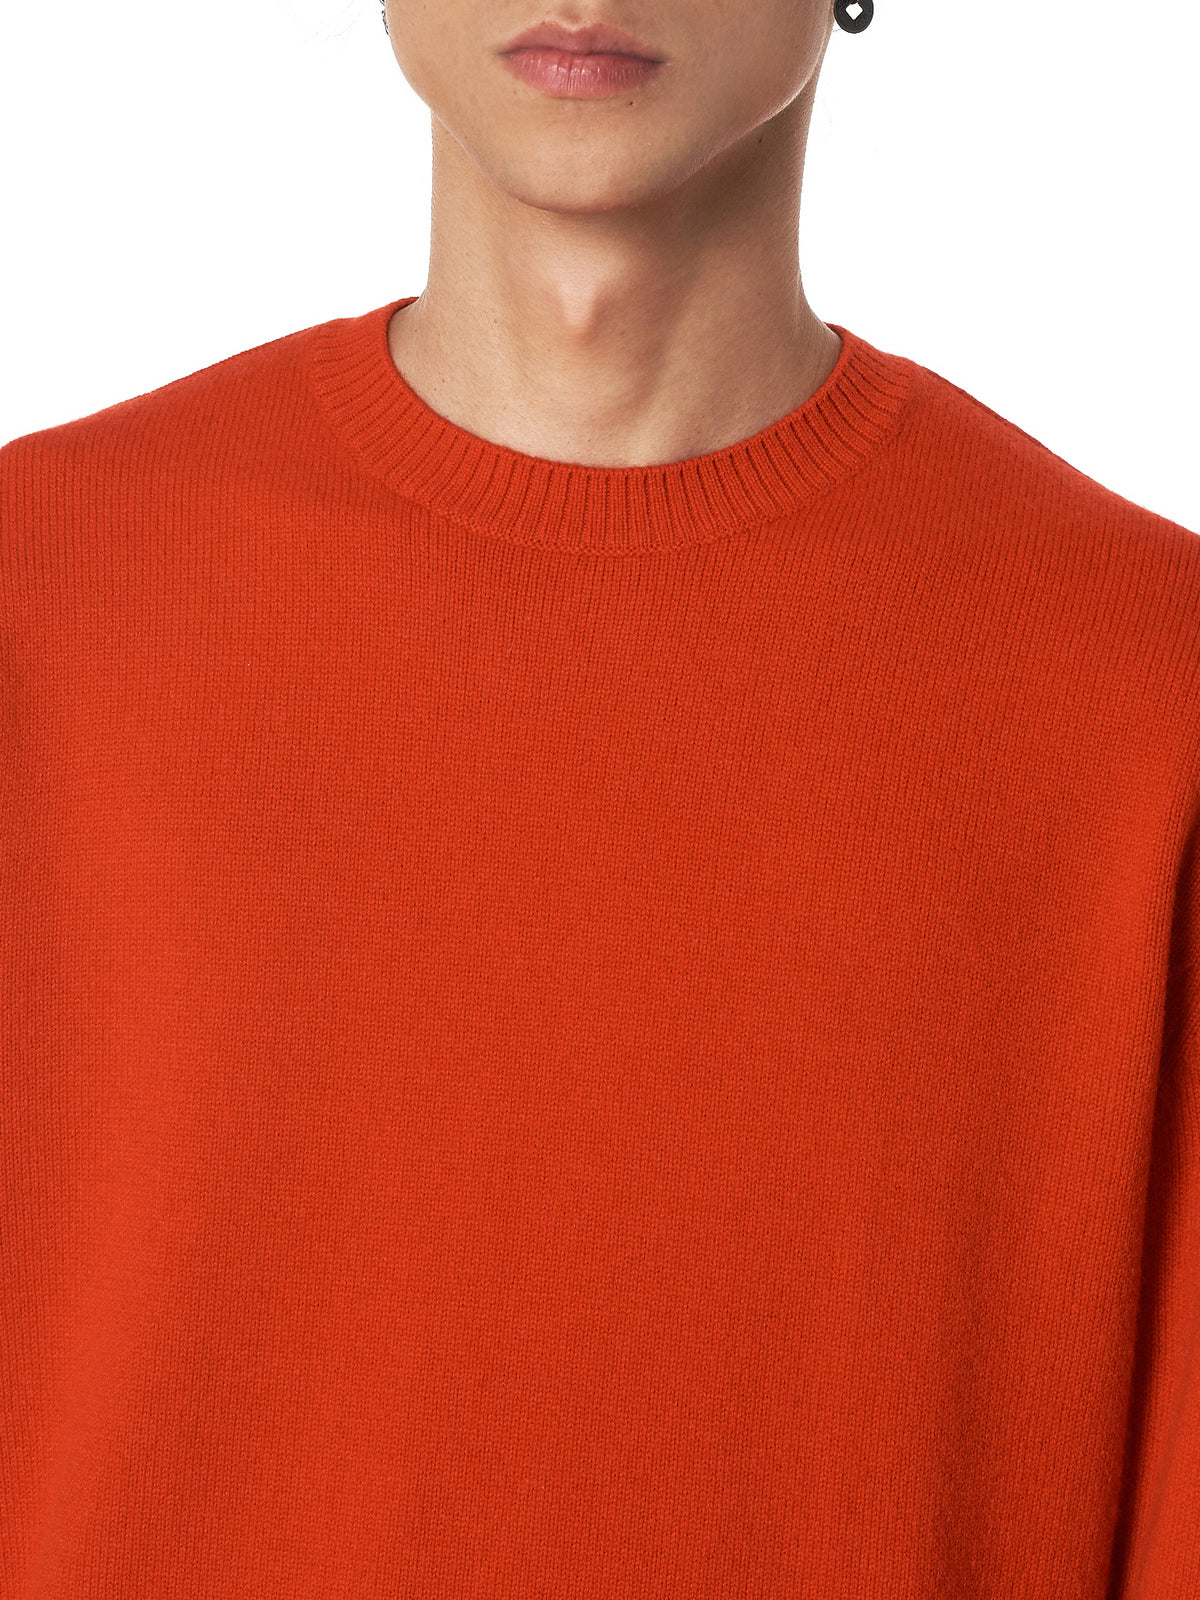 John Elliot Sweater - Hlorenzo Detail 2